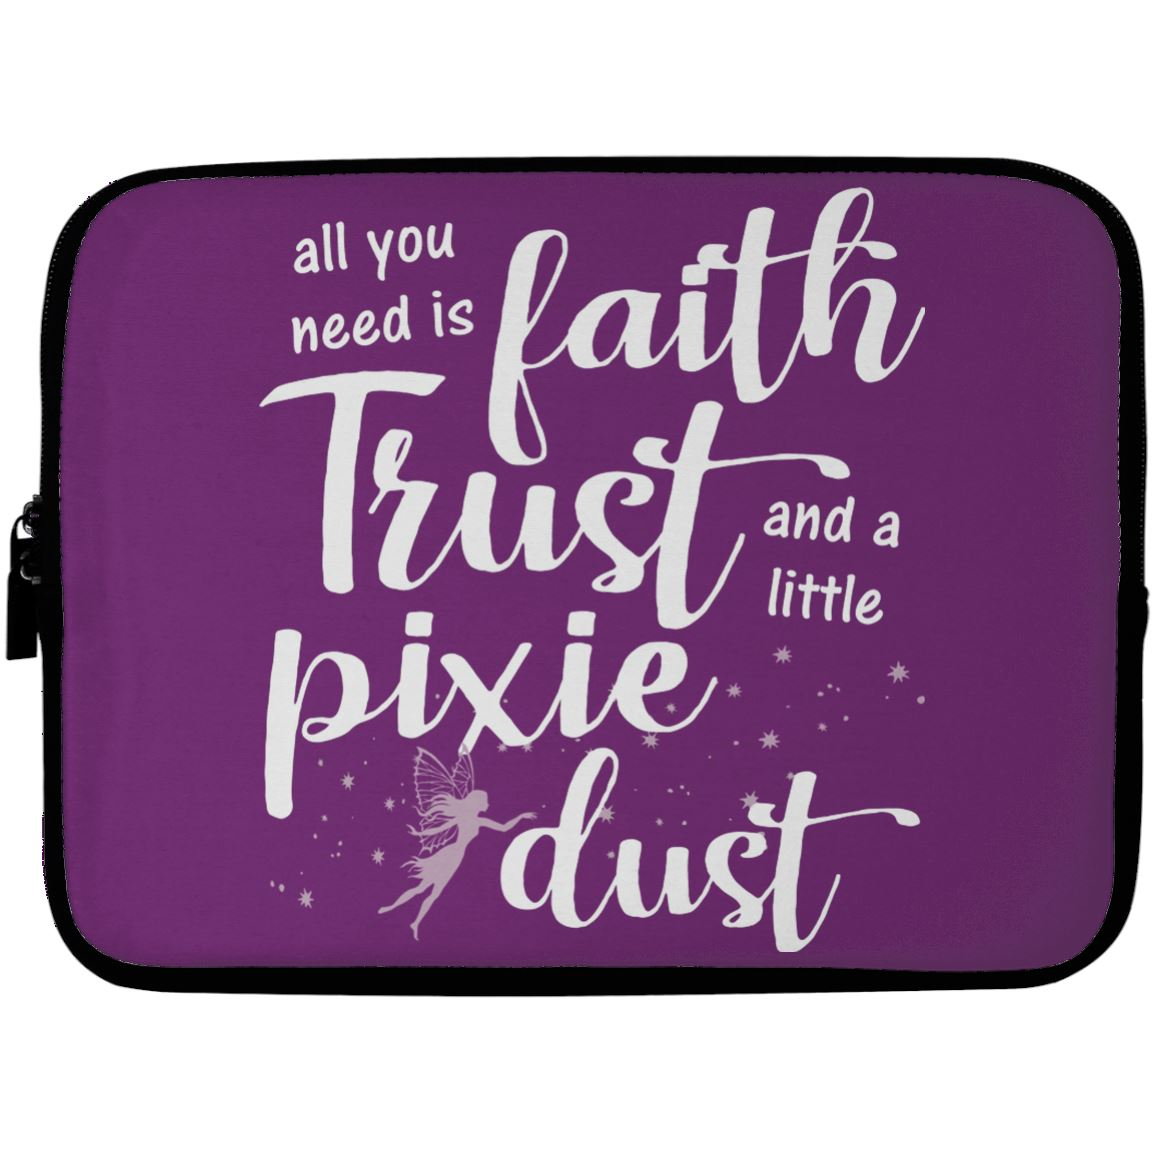 Pixie Dust Fairy Laptop Sleeve Apparel Laptop Sleeve - 10 inch Purple One Size